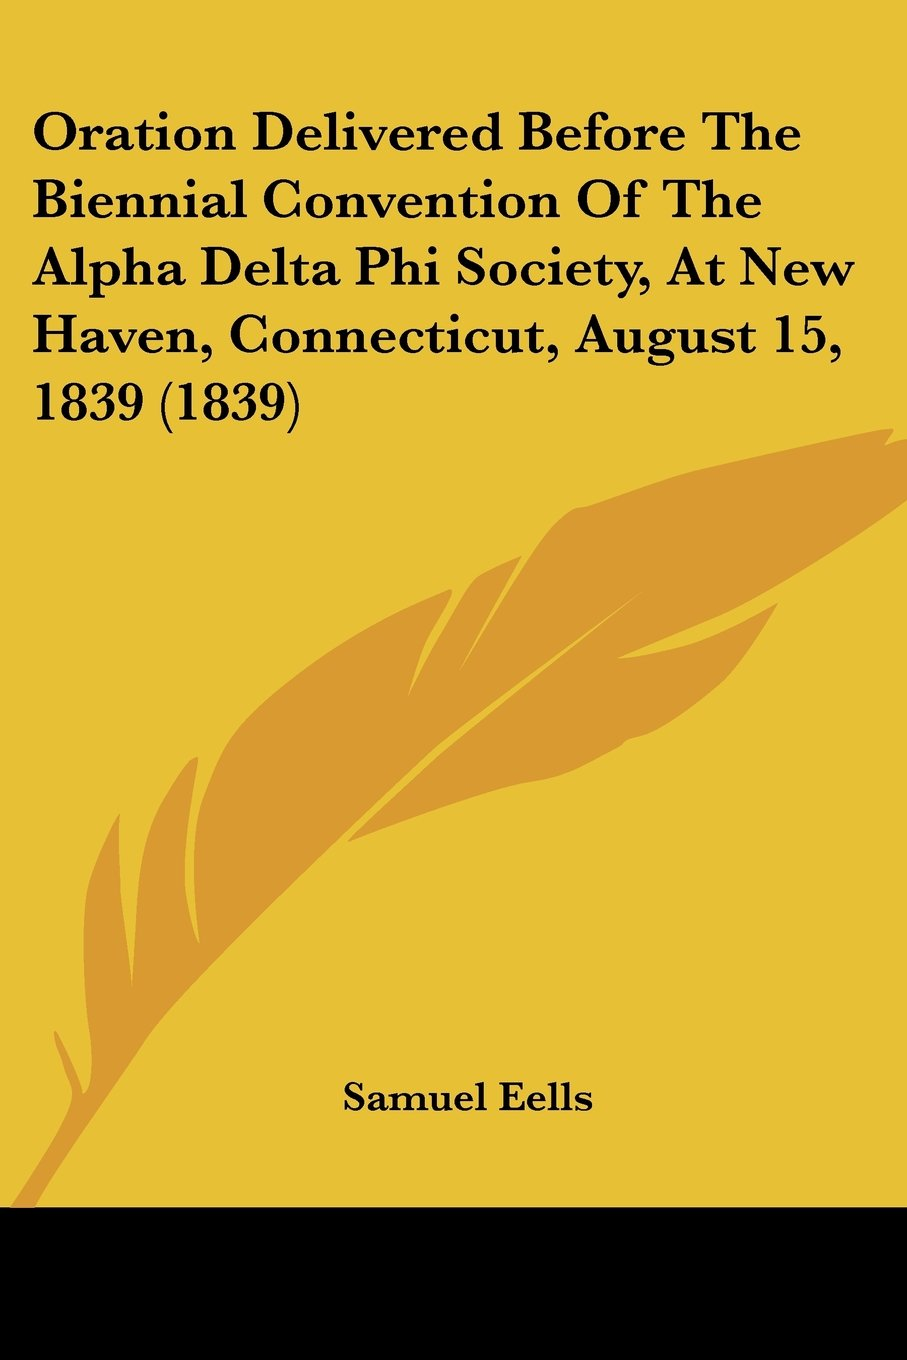 Download Oration Delivered Before The Biennial Convention Of The Alpha Delta Phi Society, At New Haven, Connecticut, August 15, 1839 (1839) ebook